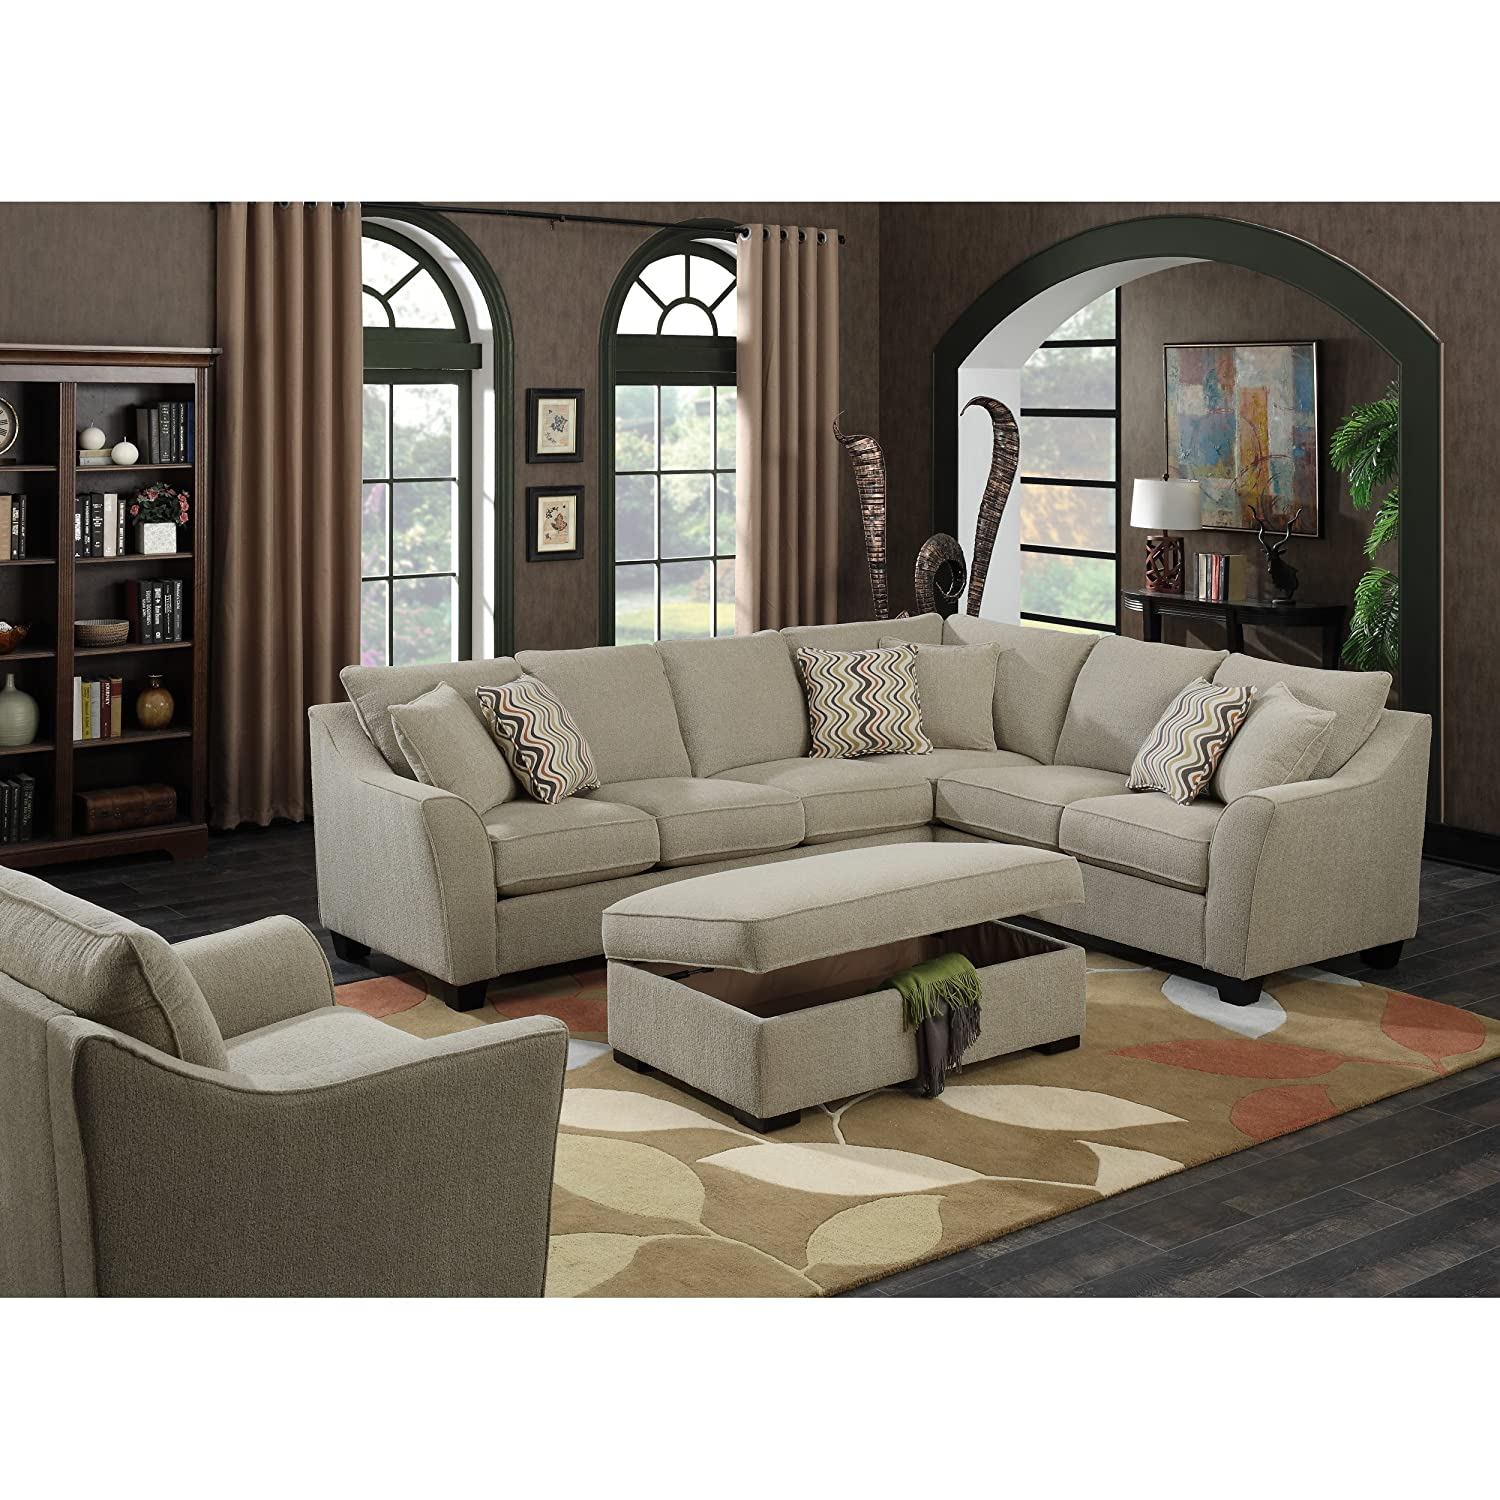 Amazon Emerald Home Cream Sectional with Pillows Loose